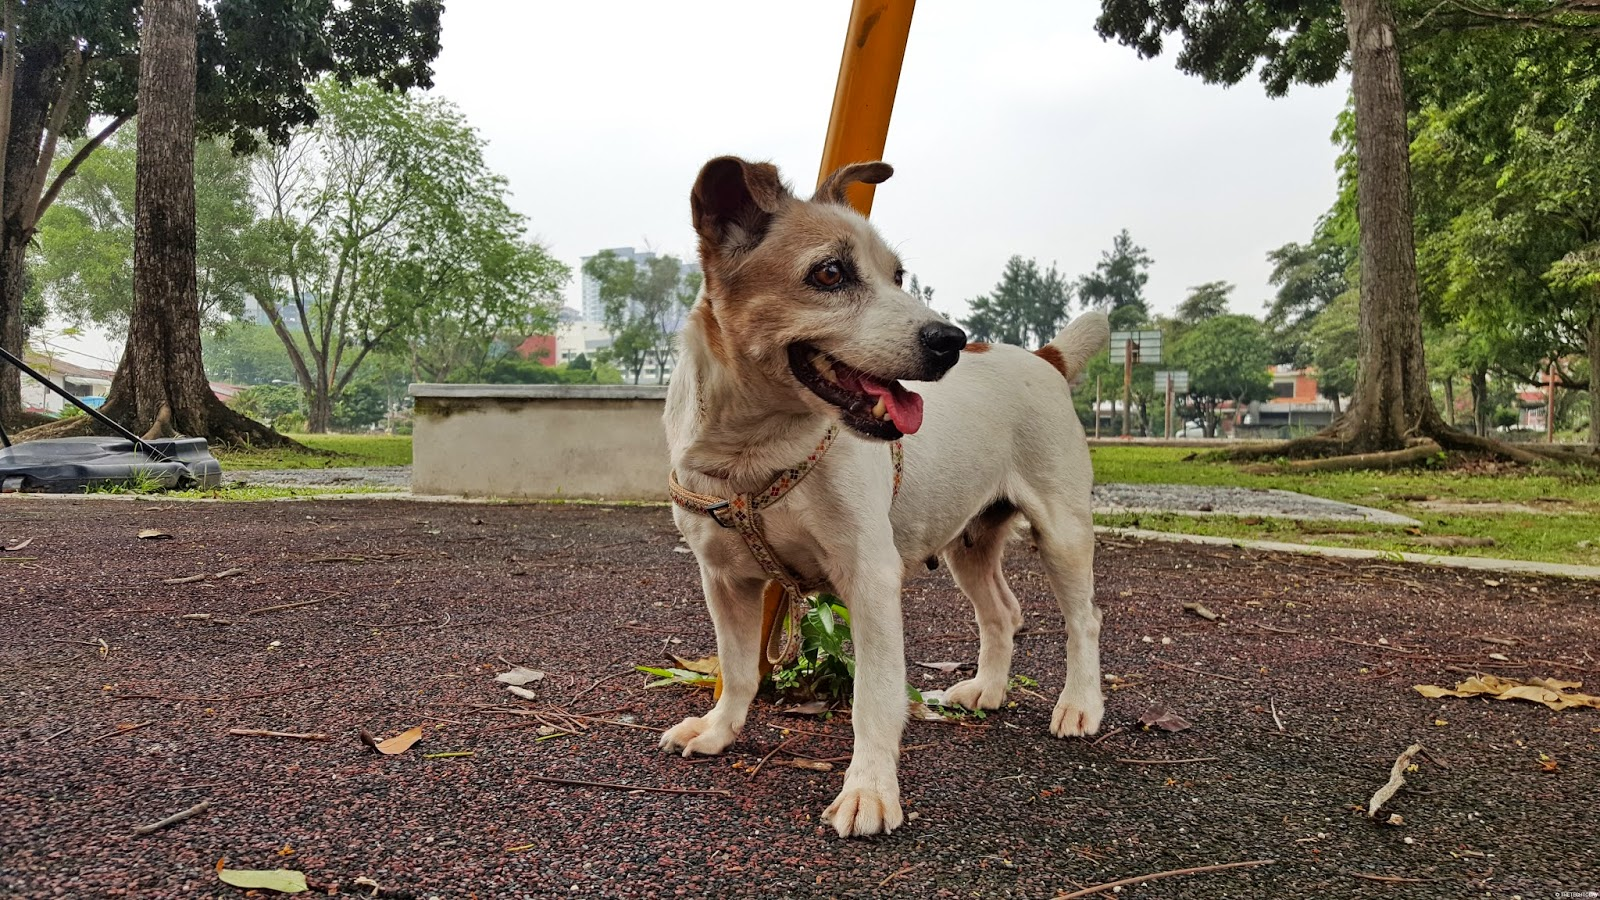 galaxy-s6-sample-image-dog-malaysia-jack-russell